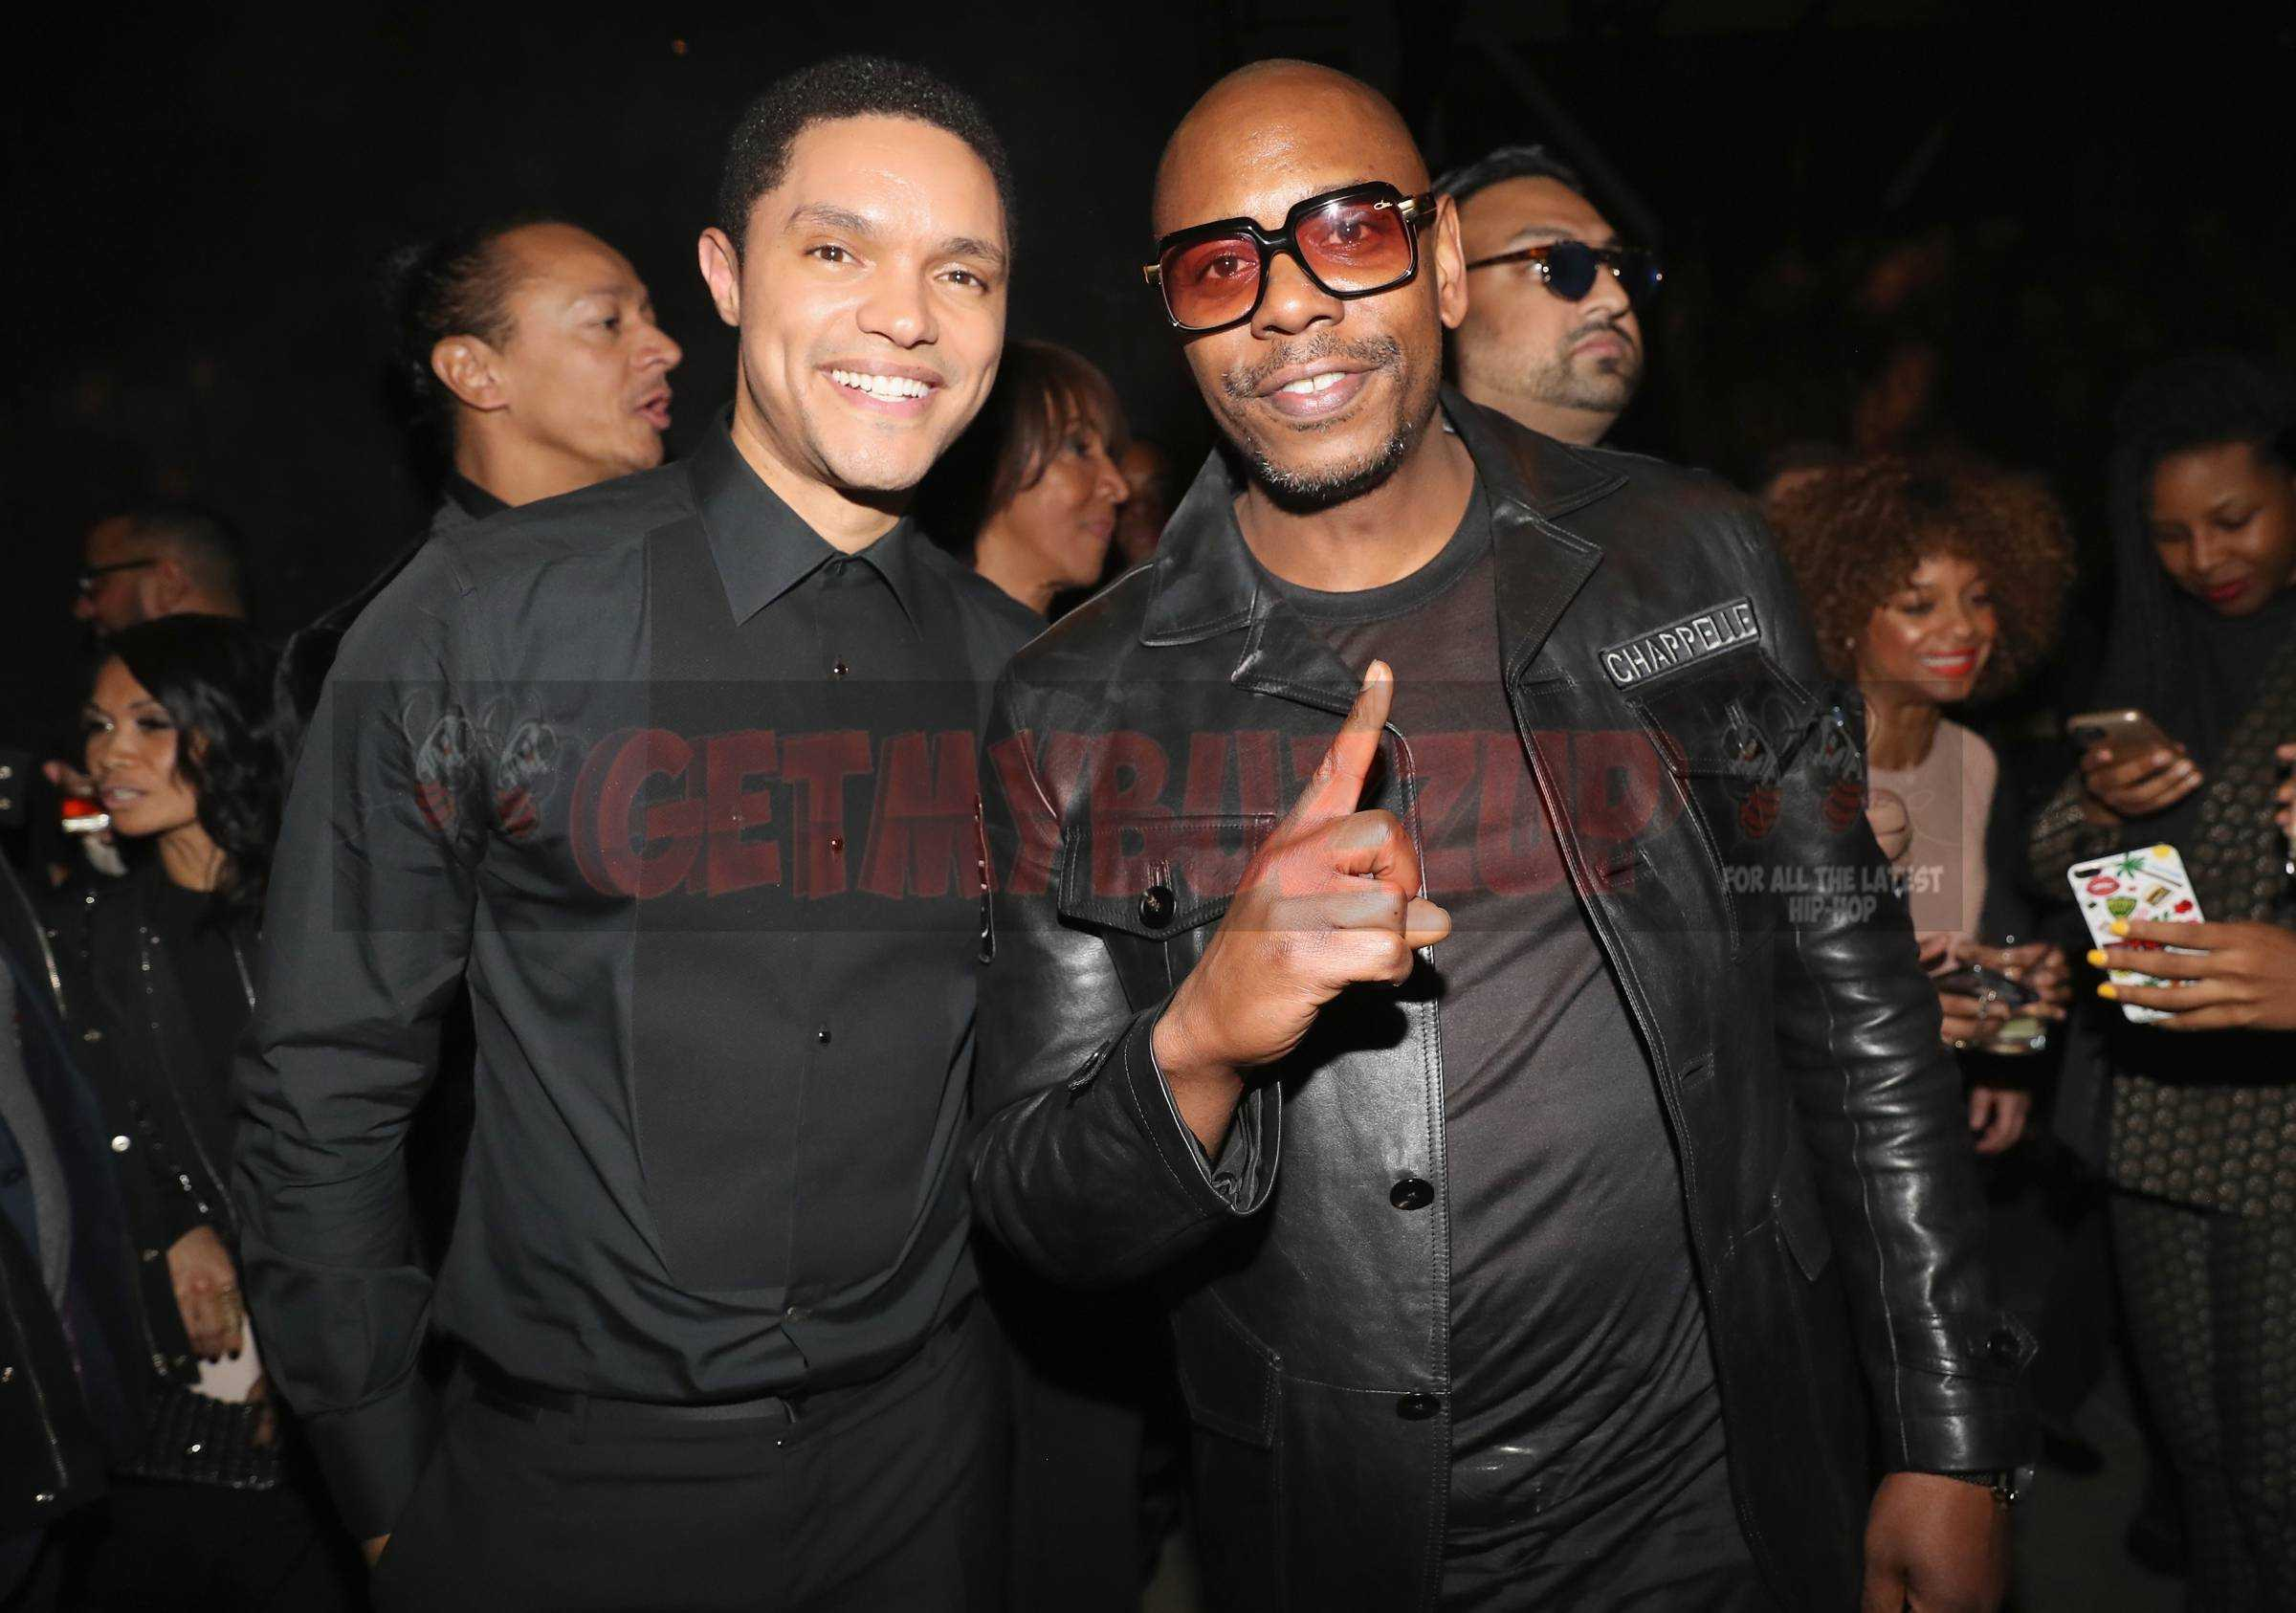 Dave Chappelle, Sarah Silverman, Trevor Noah, Lisa Loeb, Shanina Shaik, Erykah Badu Dapper Dan, Eve at the UMG 2018 Grammy After Party Supported by Rémy Martin [Photos]